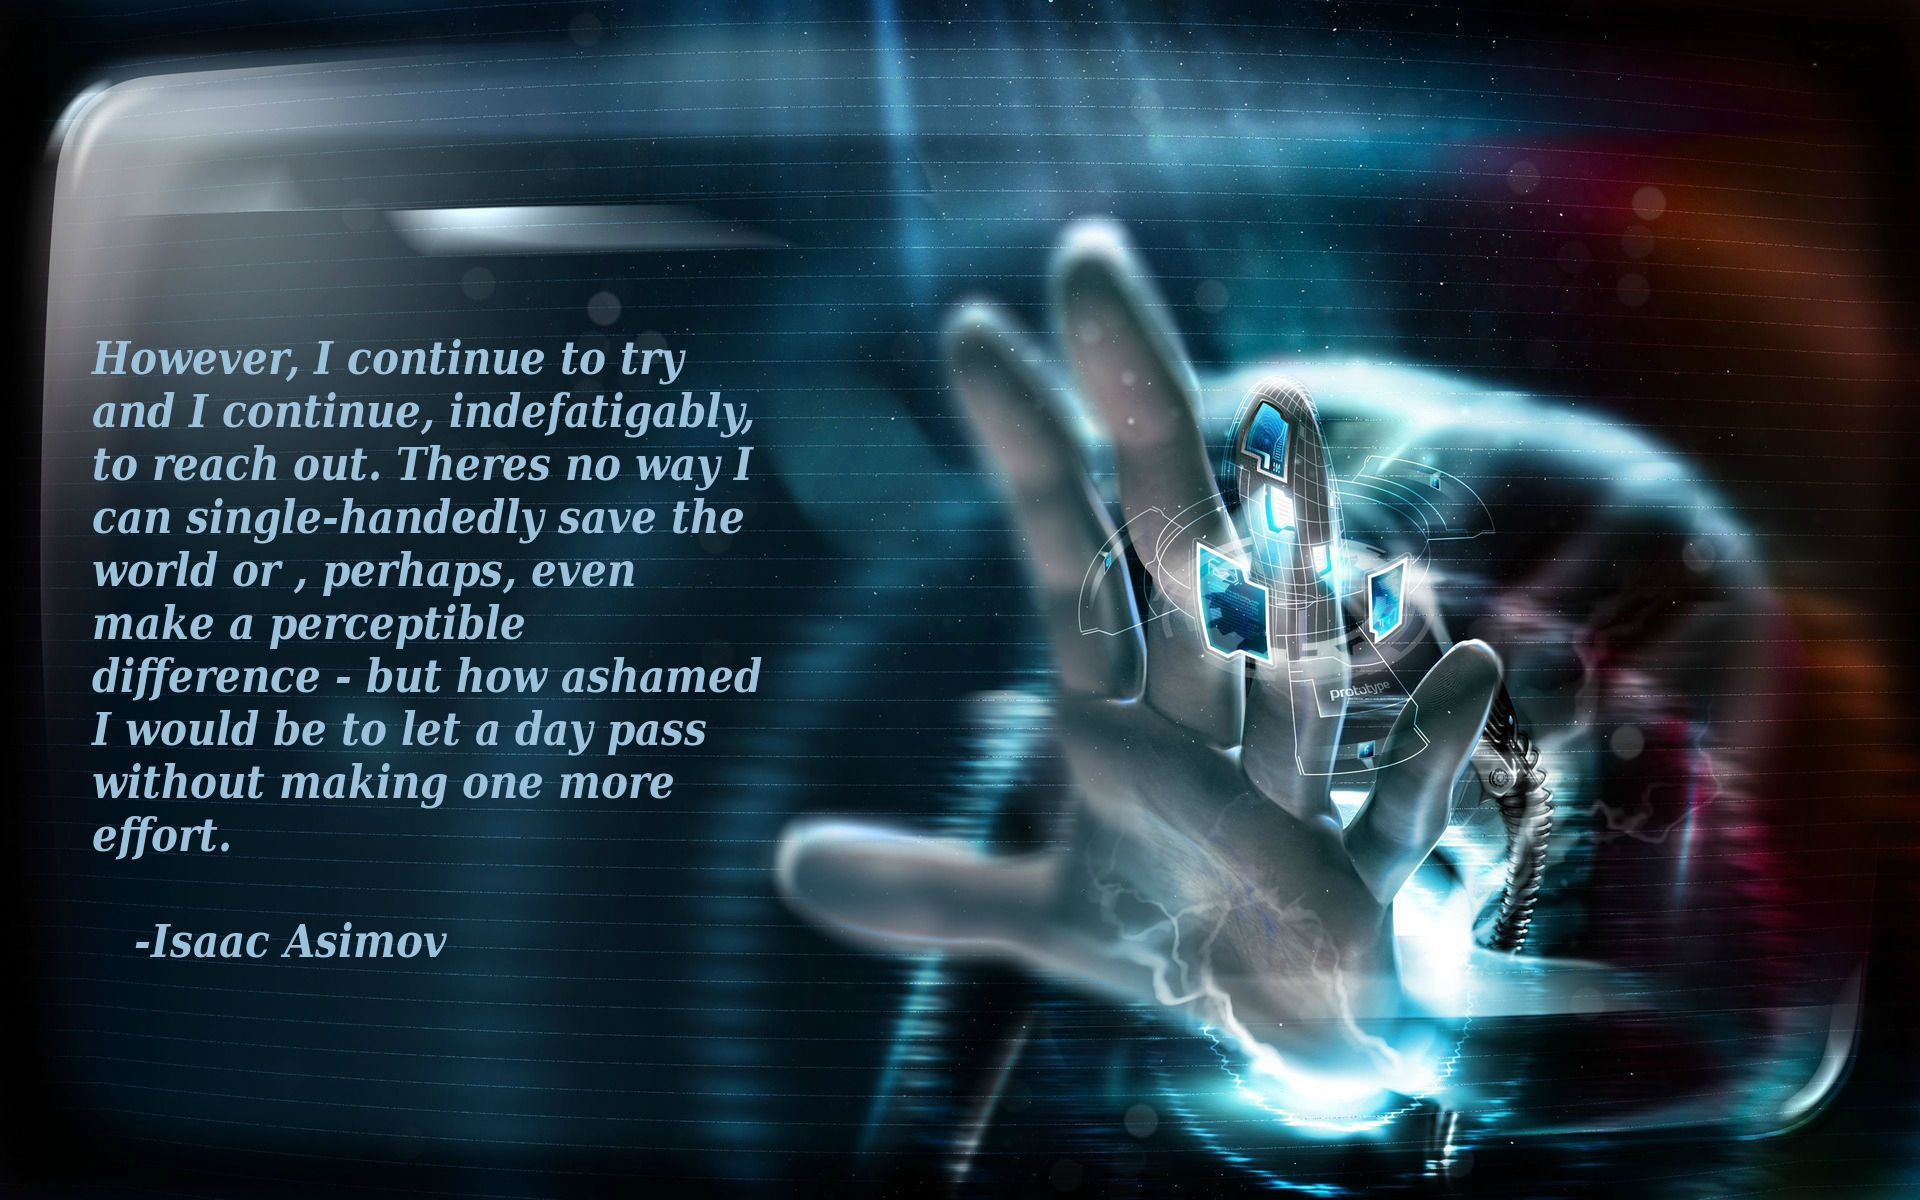 Isaac Asimov Inspirational Wallpaper Hi Tech Wallpaper 4k